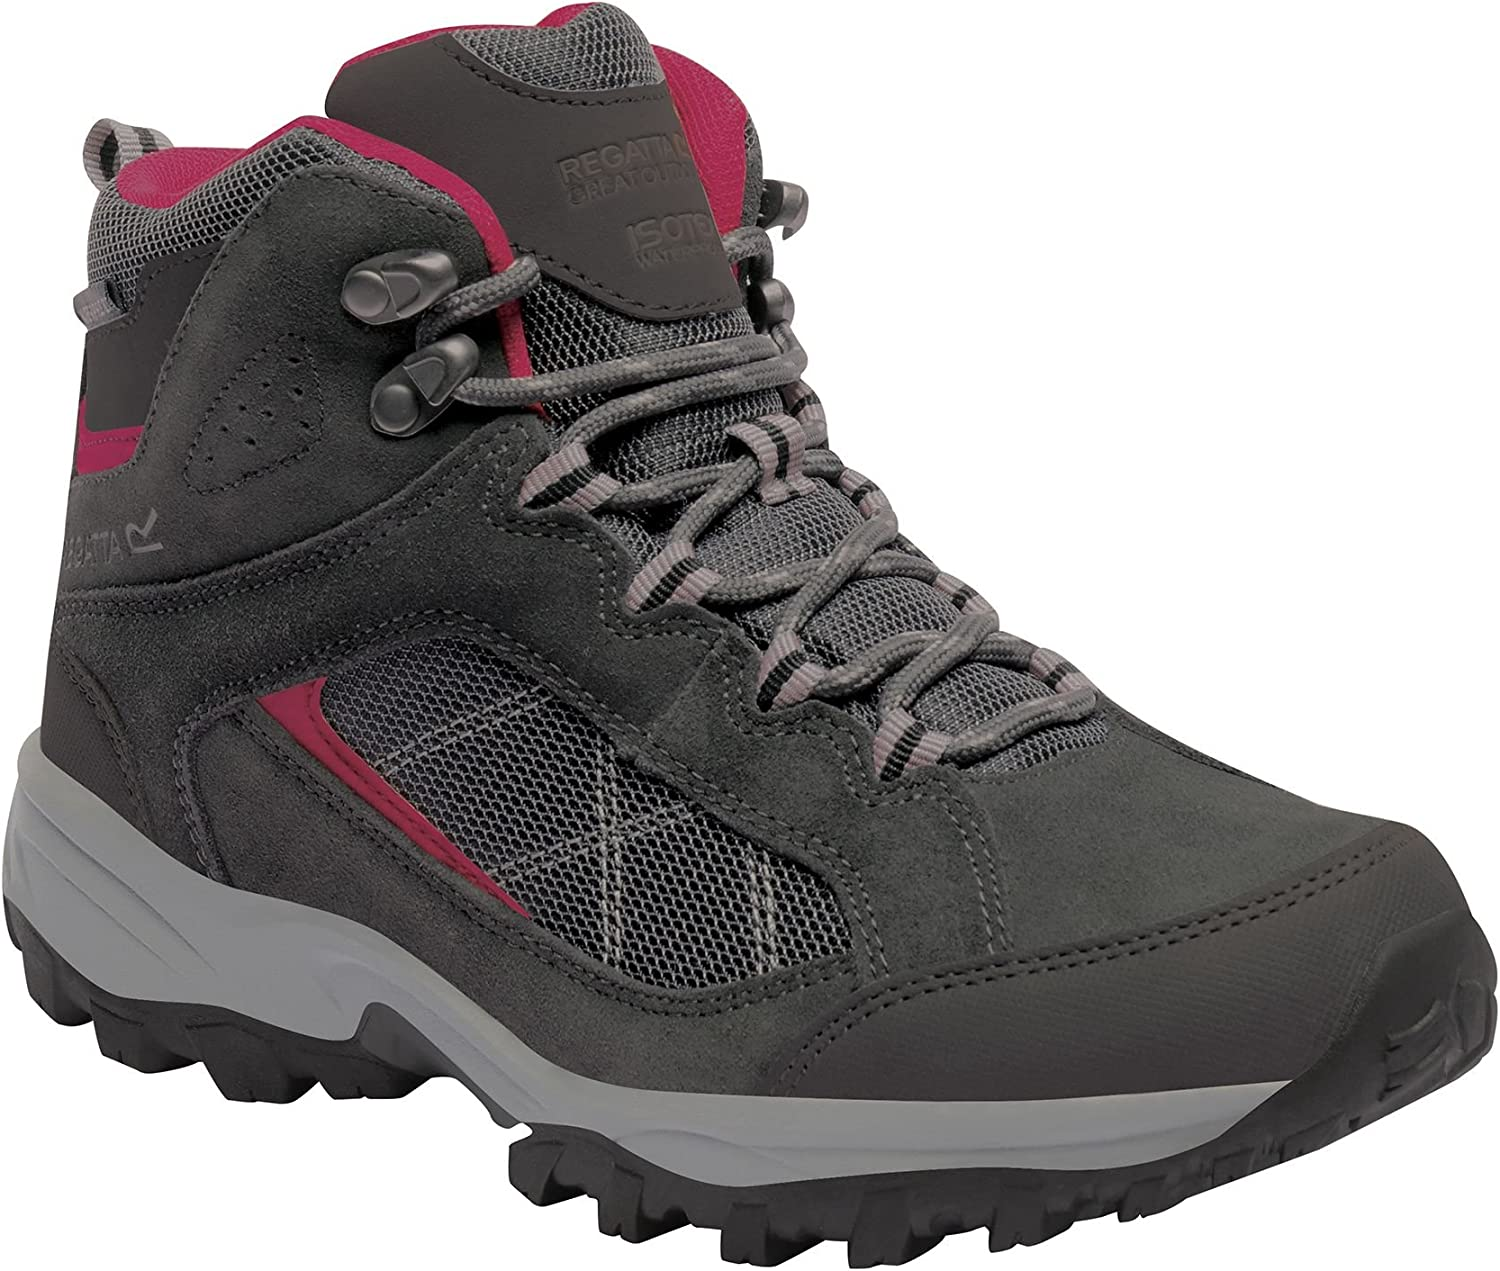 Regatta Great Outdoors Womens/Ladies Lady Clydebank Waterproof Hiking Boots Navy/Ash Rose